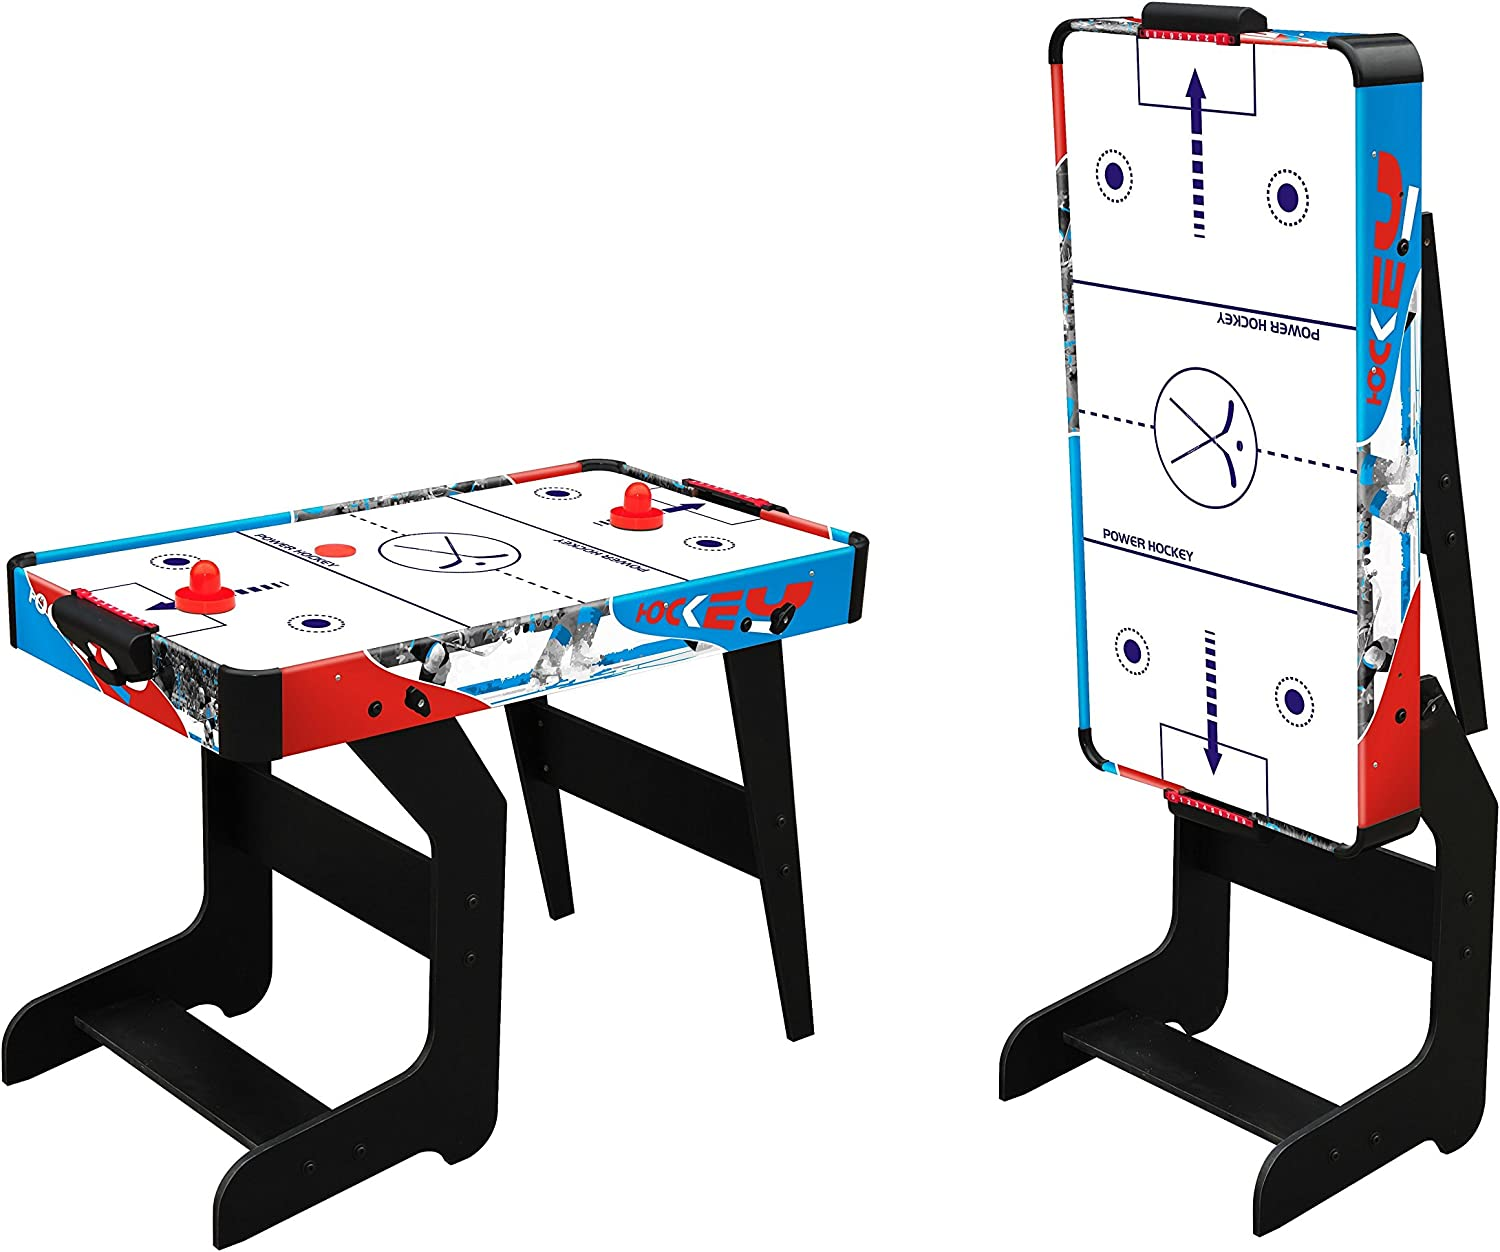 MESA AIR HOCKEY PLEGABLE PARA NIÑOS MOKO - VENTILADOR: Amazon.es ...